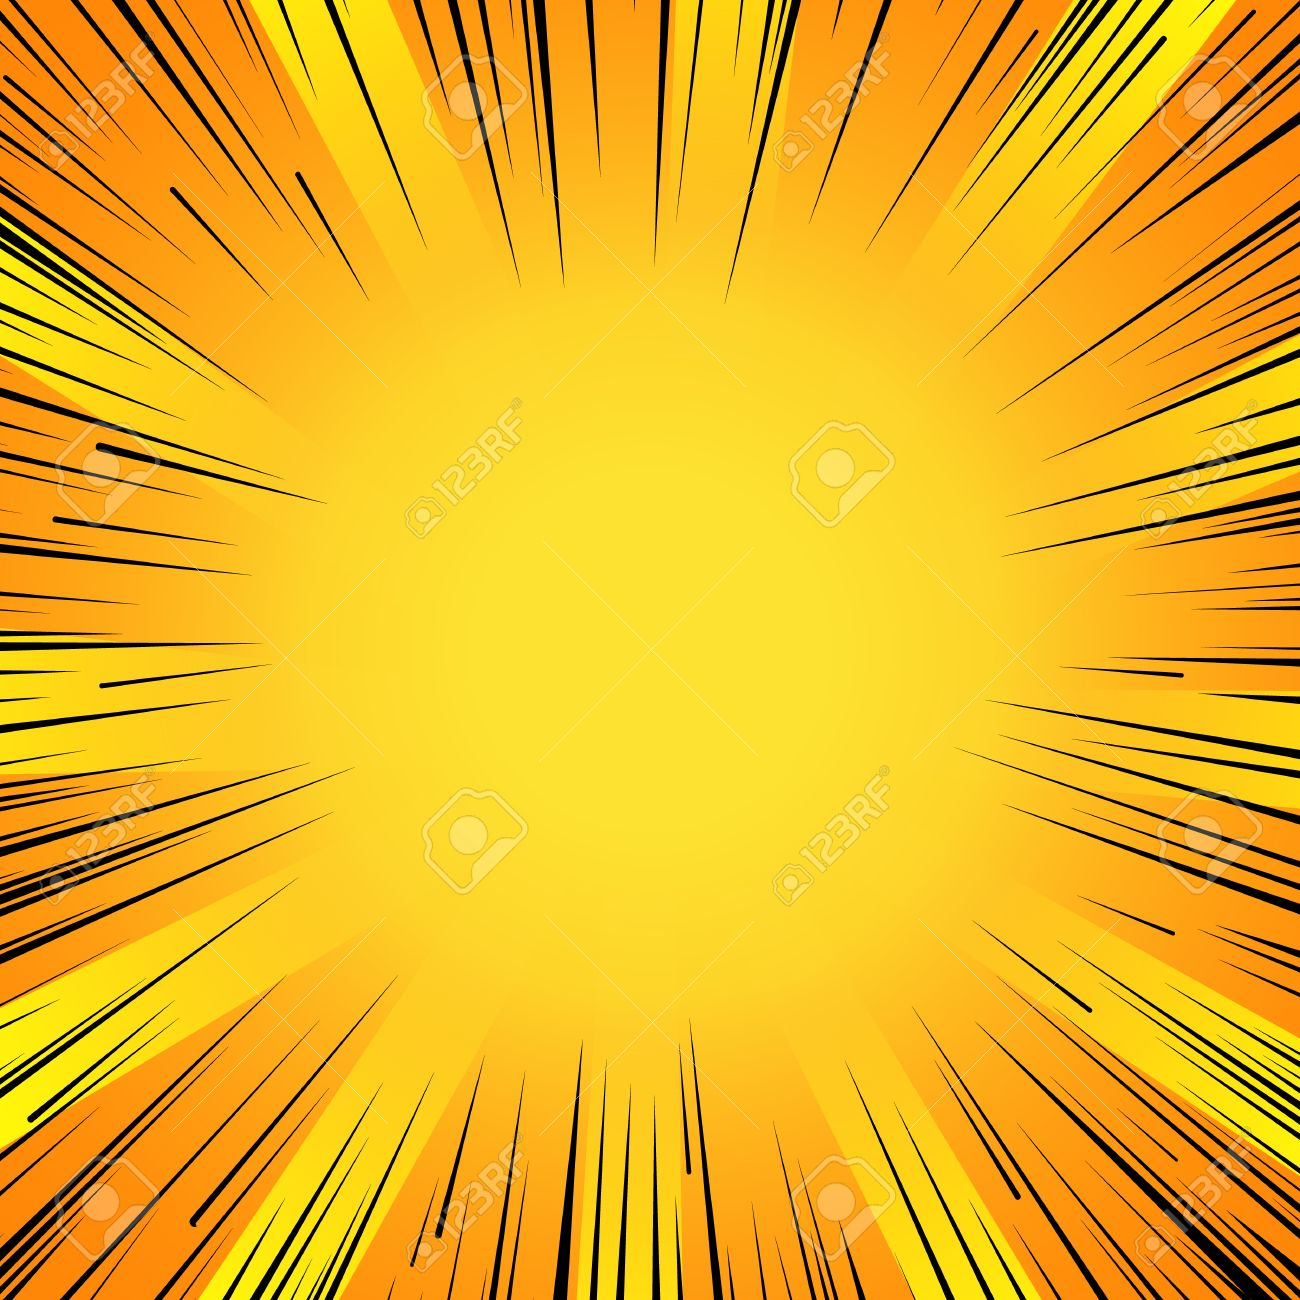 Abstract comic book flash explosion radial lines background. - 53985421